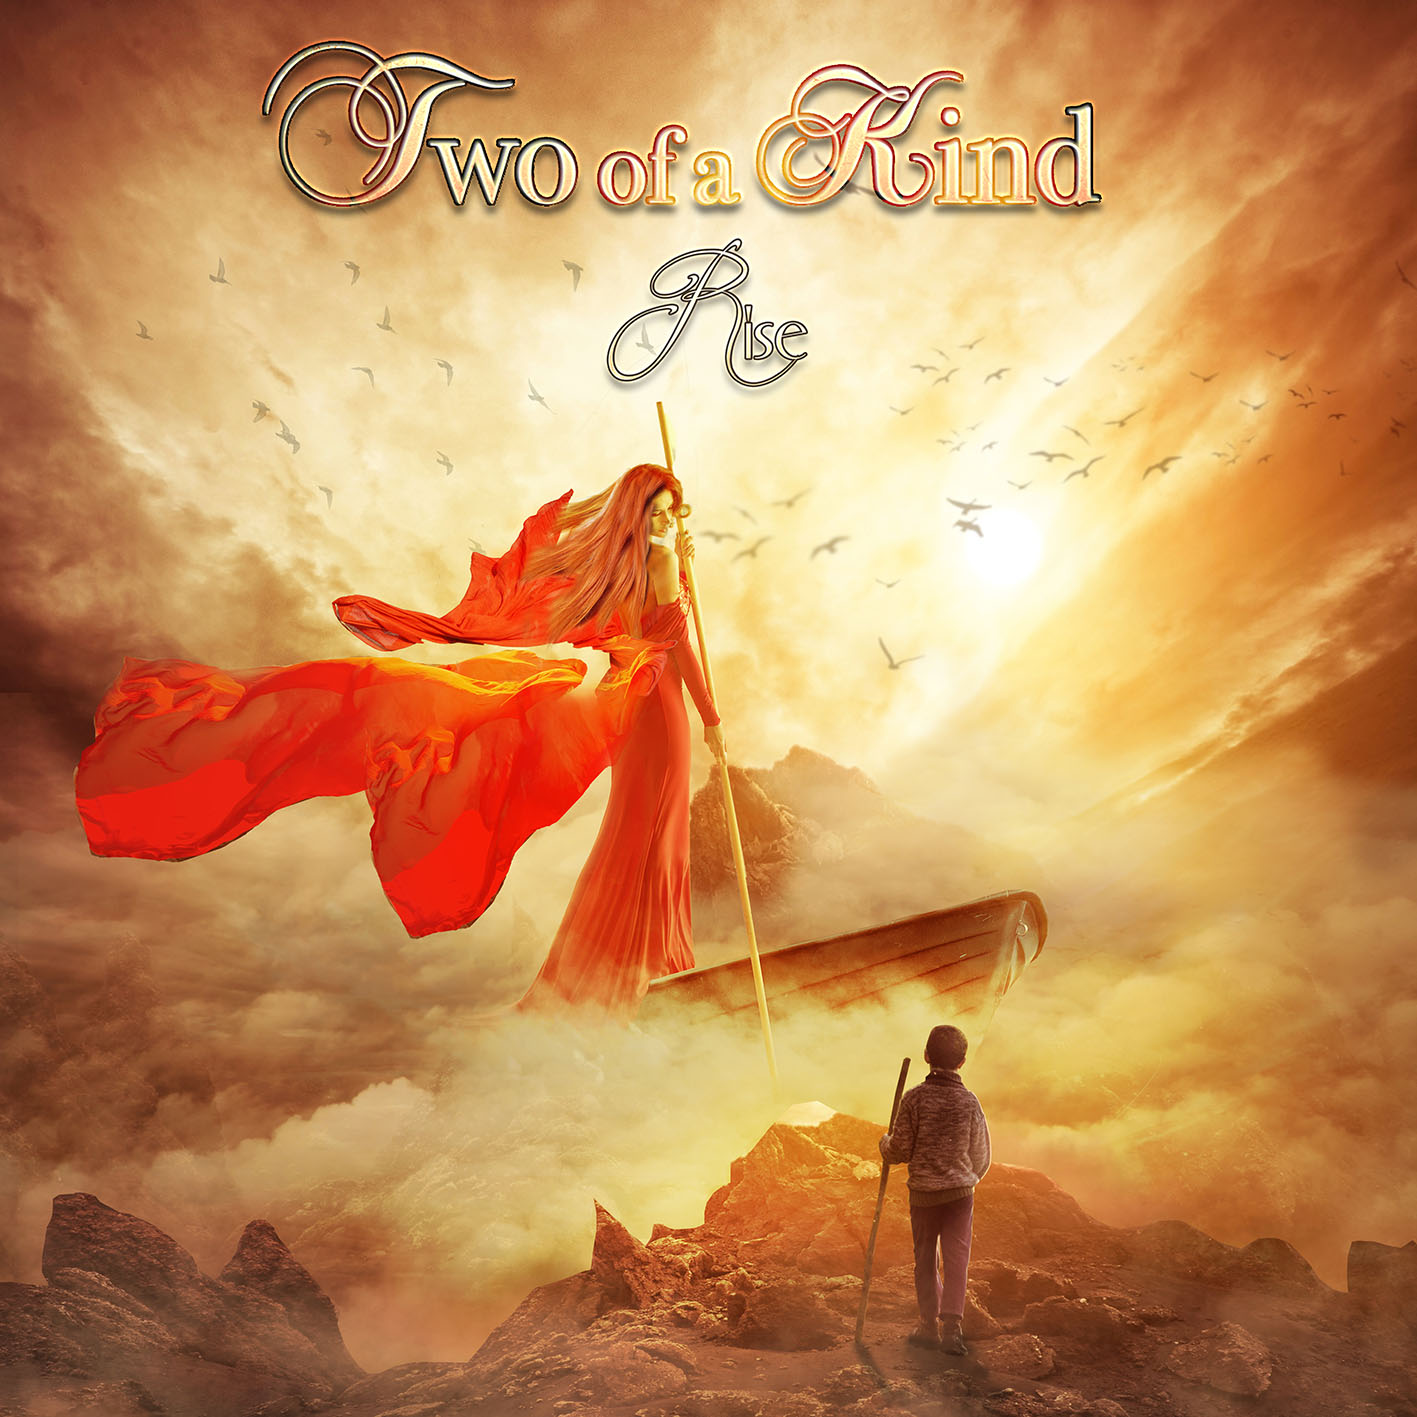 two of a kind-rise